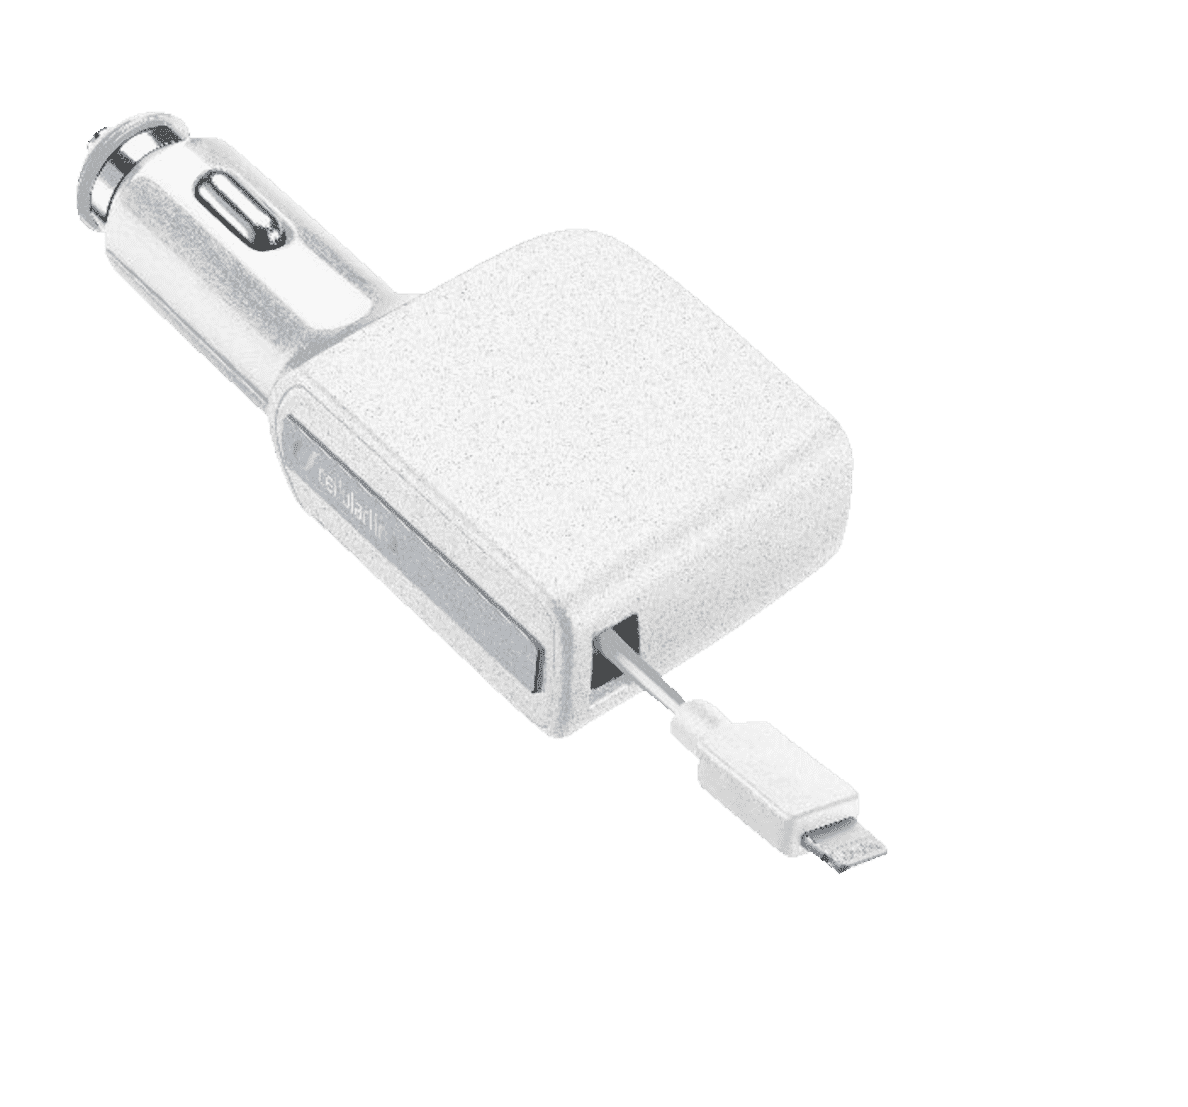 CELLULAR LINE  Roller Car Charger Ultra Lightning Kfz Ladegerät, Apple, iPhone mit Lightning Anschluss, z.B. iPhone 5, 5s, SE, 6, 6 Plus, 6s, 6s Plus, 7, 7 Plus, Weiß | 08018080281150